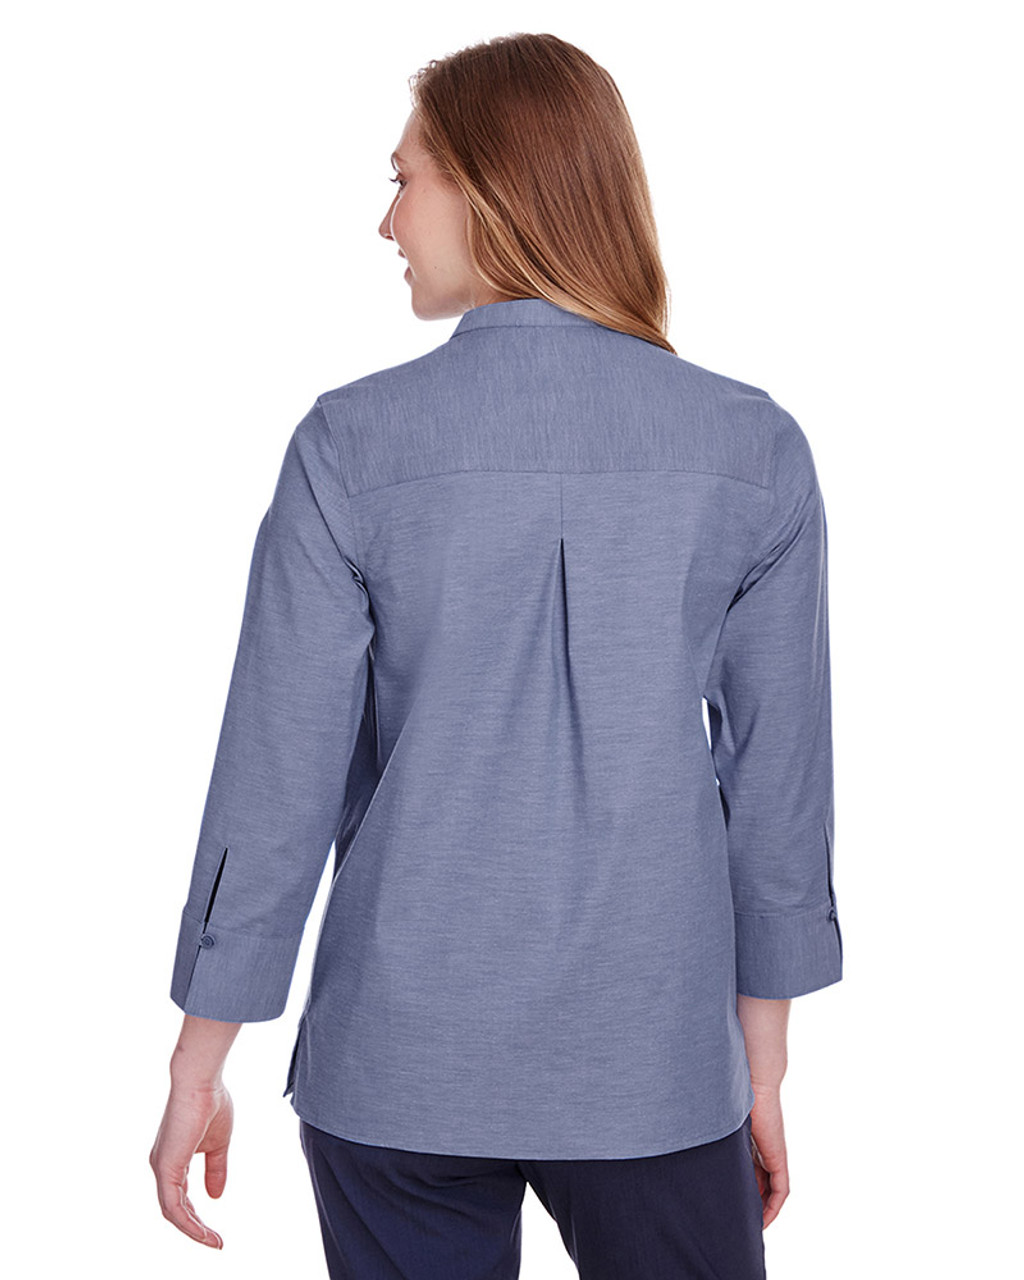 Navy - black, DG562W Devon & Jones Ladies' Crown Collection™ Stretch Pinpoint Chambray 3/4 Sleeve Blouse | Blankclothing.ca